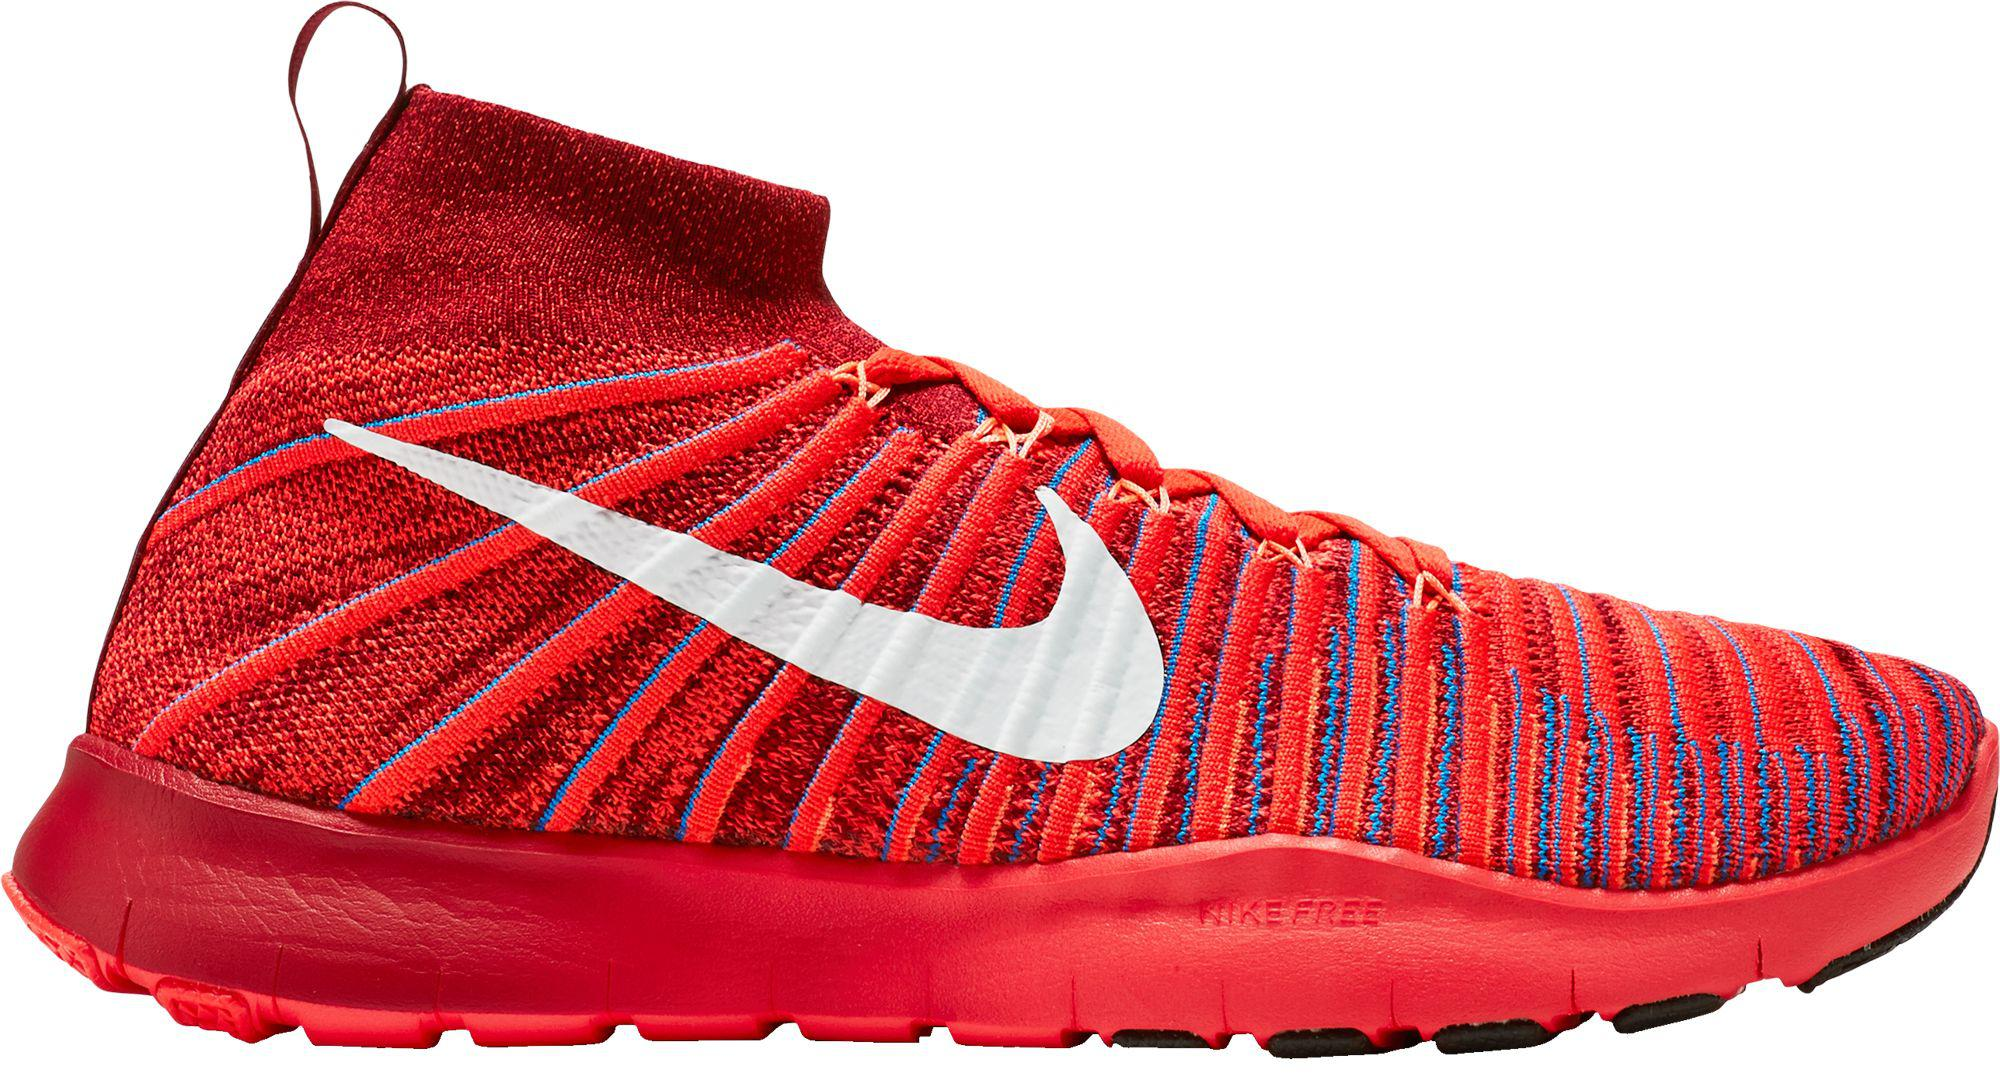 9554d58ecf648 Lyst - Nike Free Train Force Flyknit Training Shoes in Red for Men